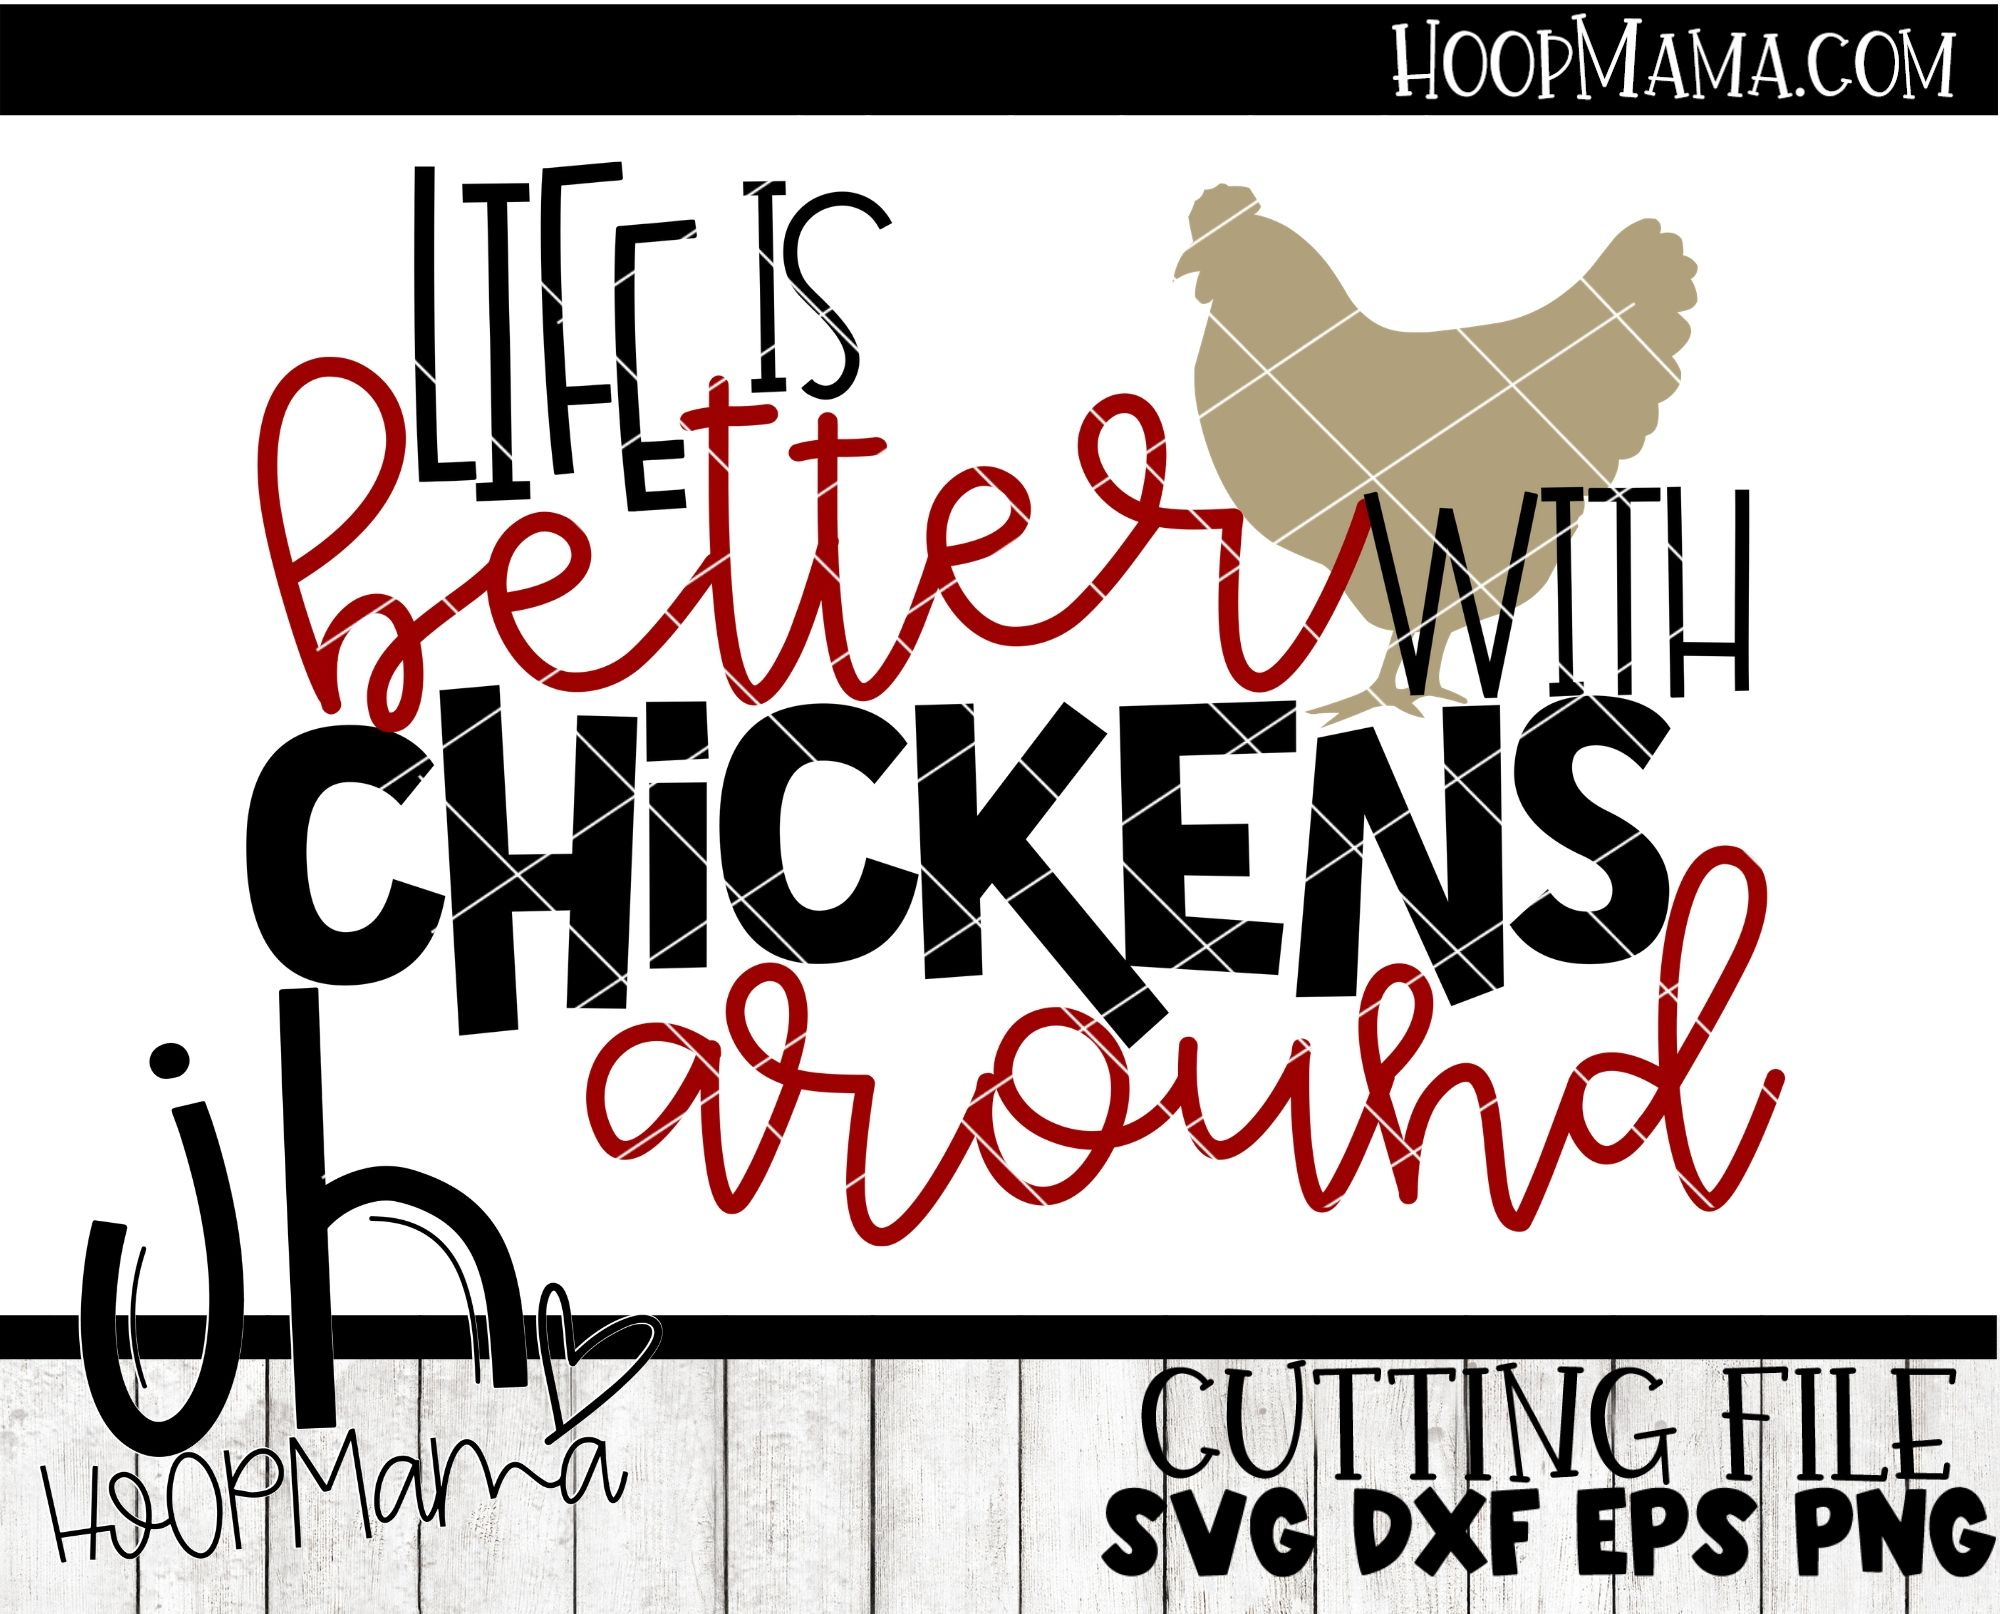 Life Is Better With Chickens Embroidery And Cutting Options Hoopmama